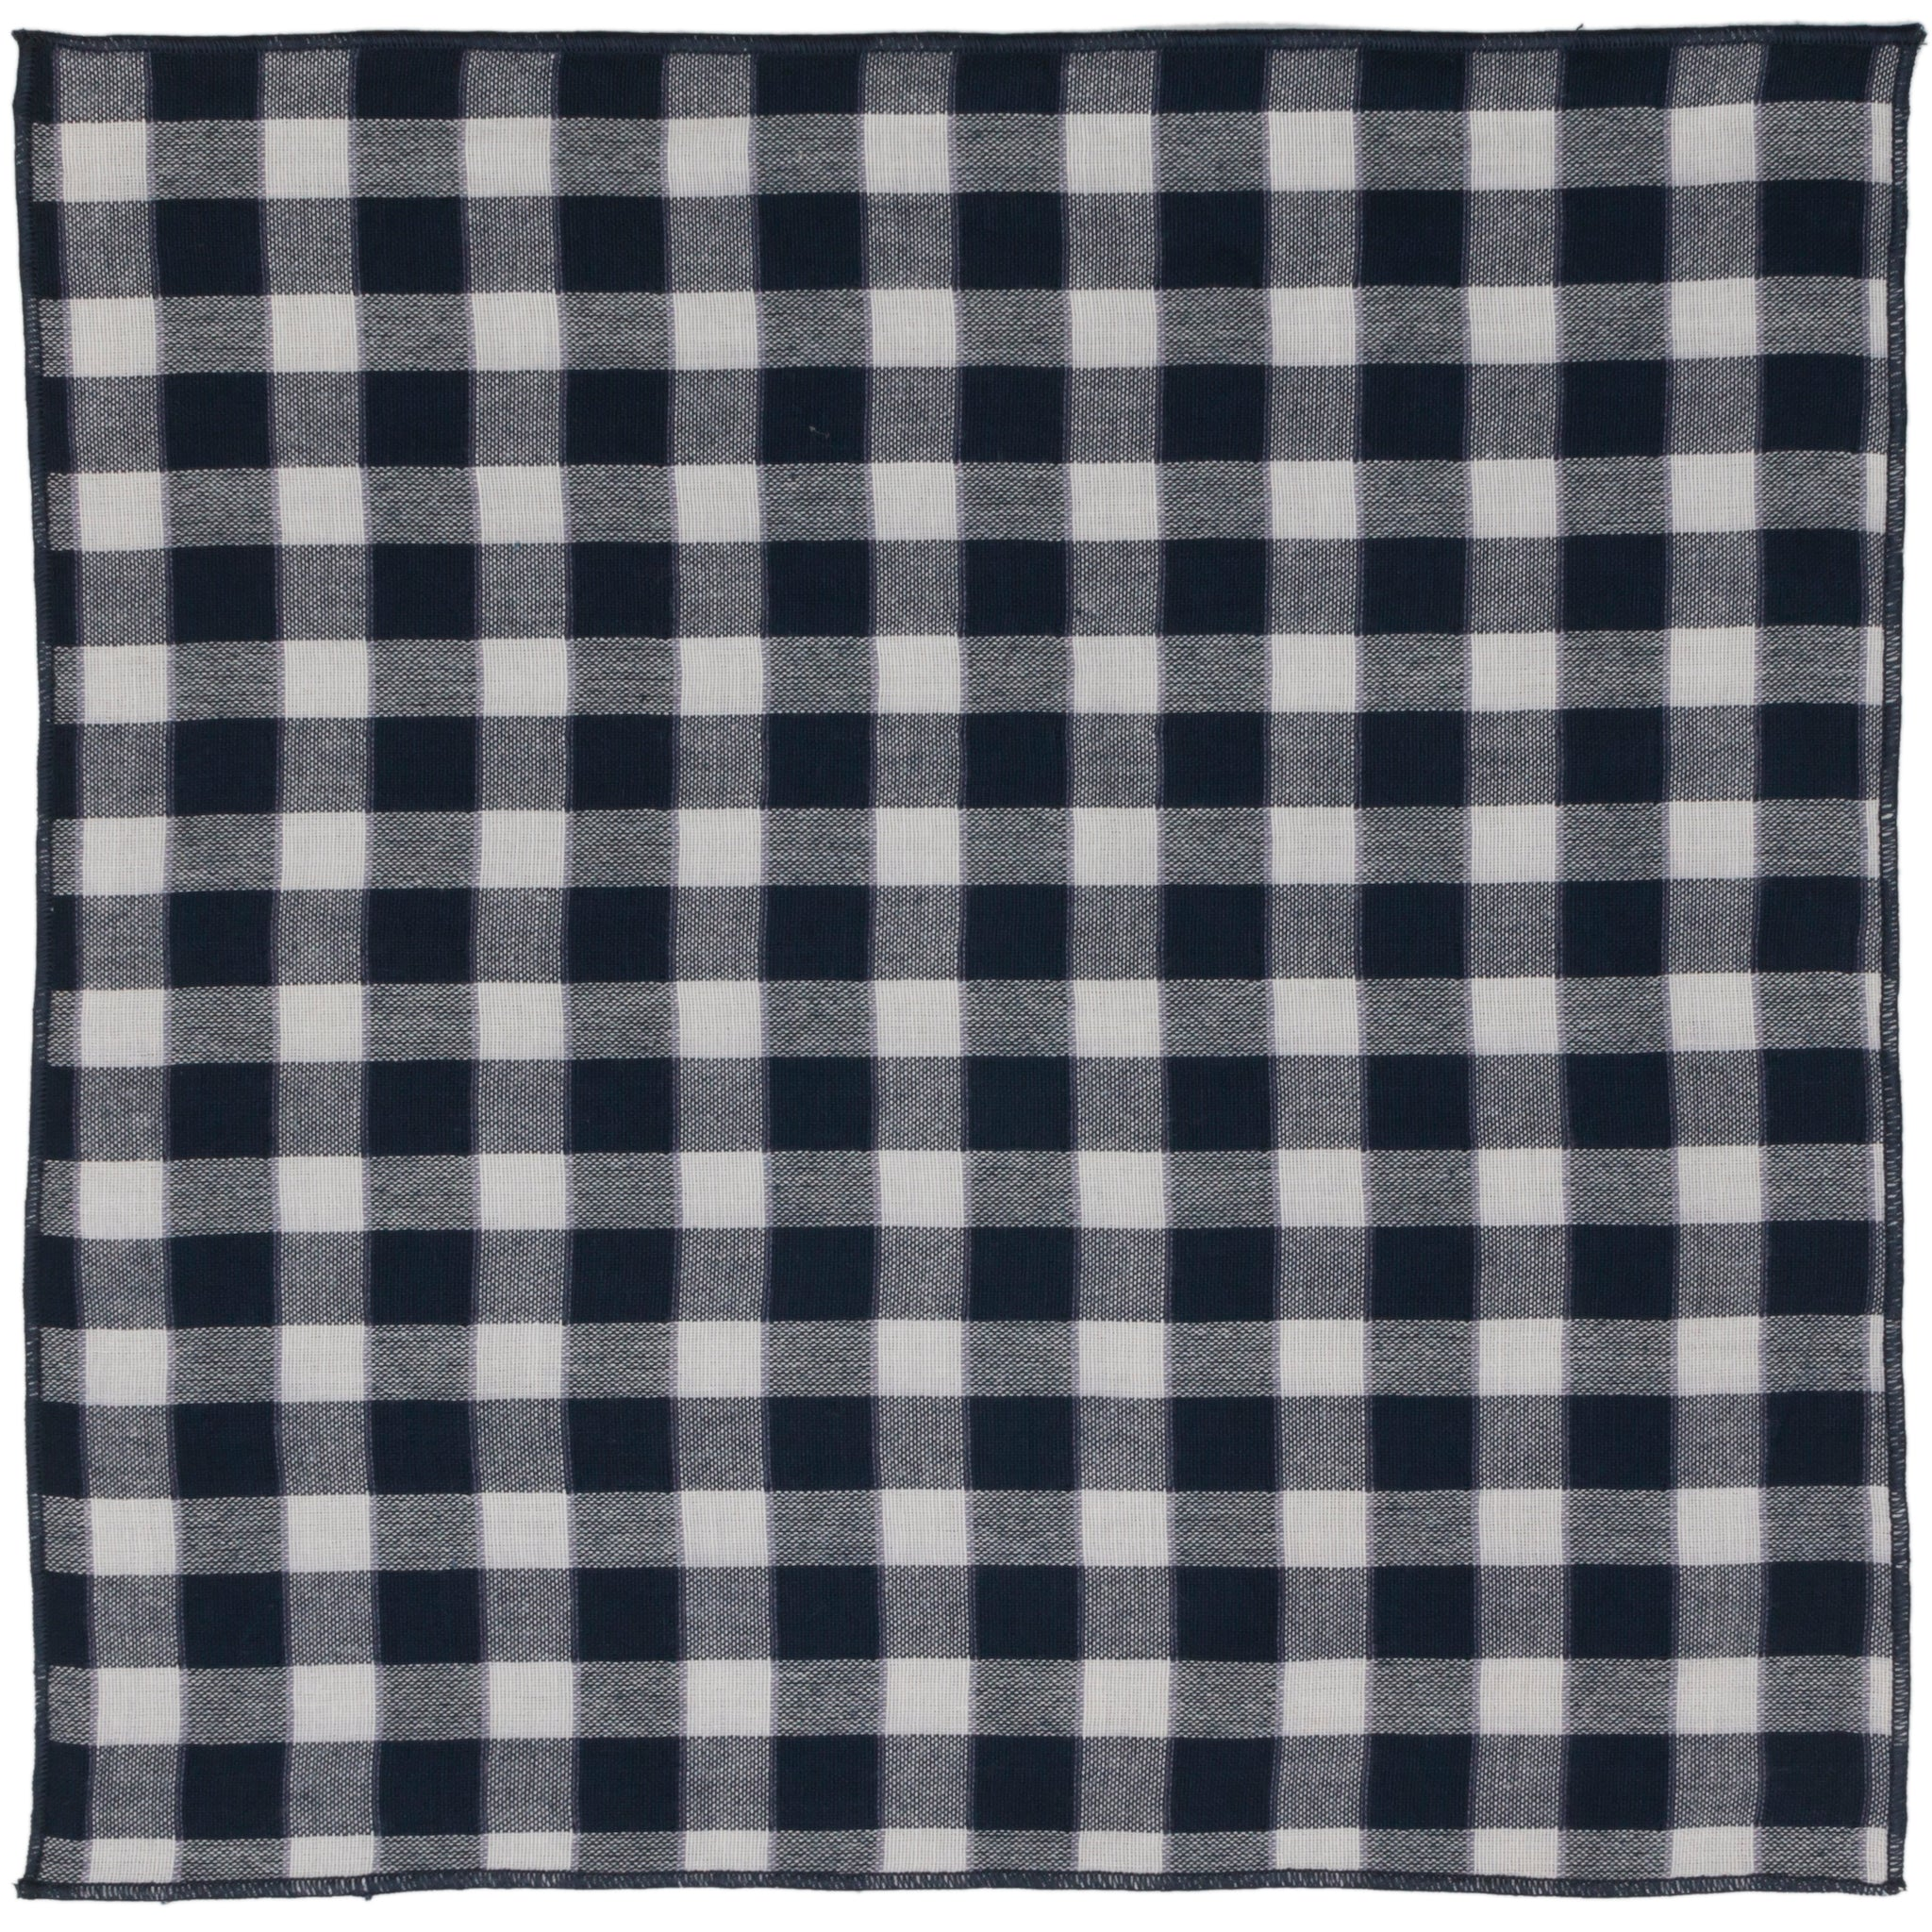 William Blue and White Check Double Gauze Pocket Square Made in Canada